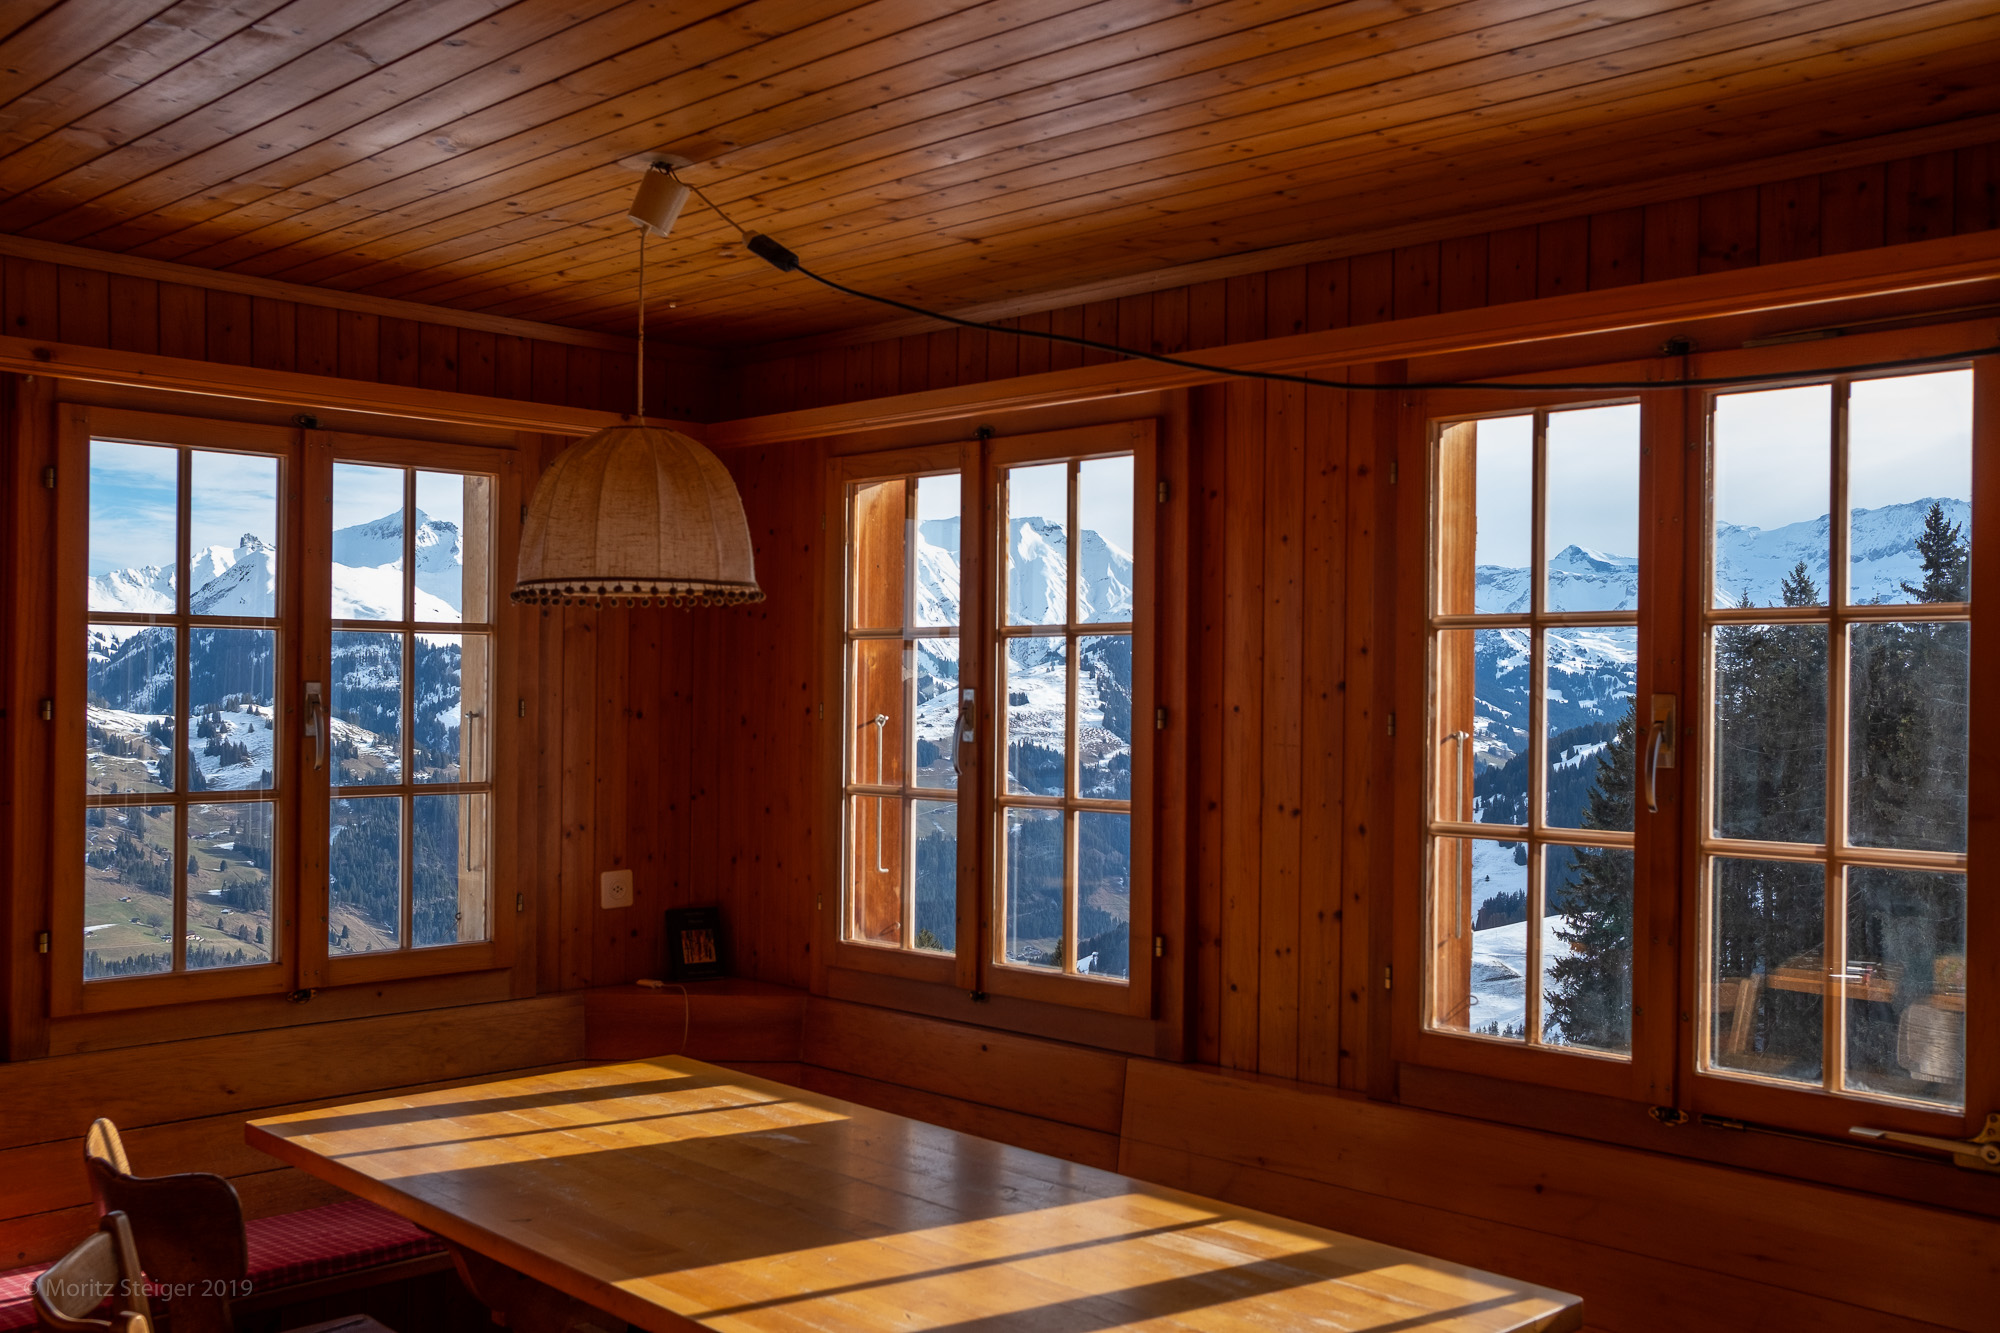 Room with a view. Chalet, Bernese mountains.